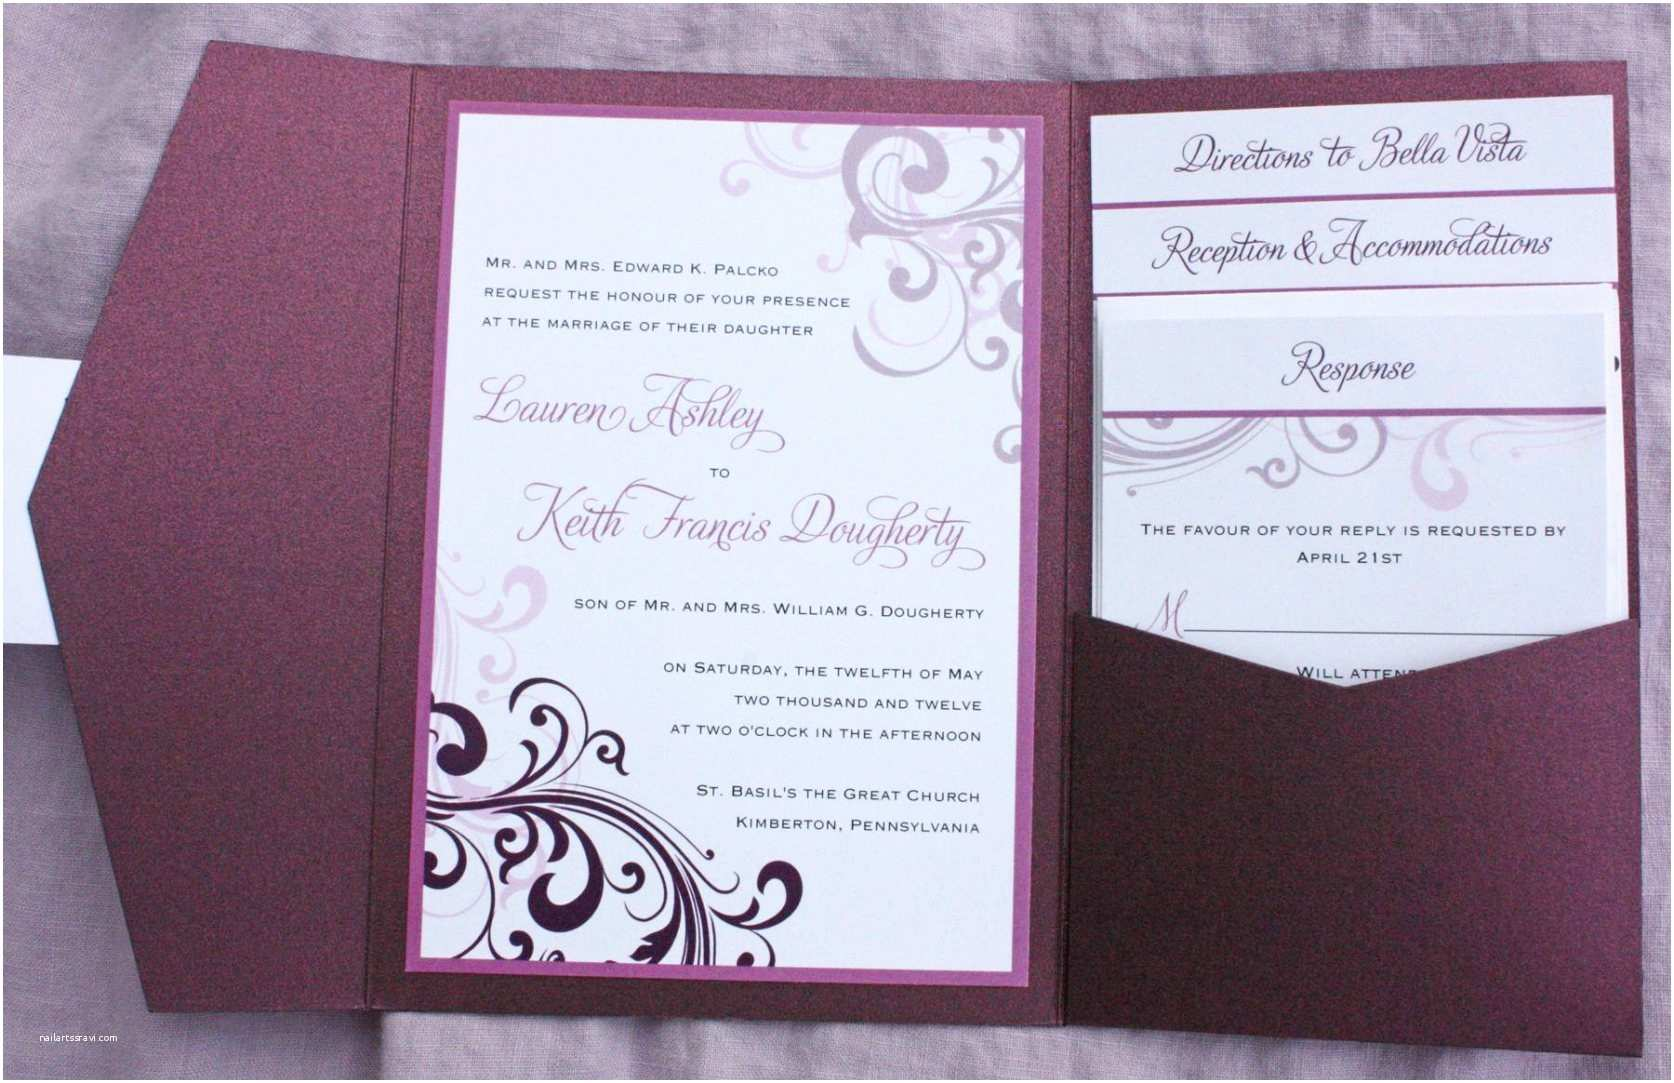 Wedding Invitations Design Your Own Online How to Design Your Own Wedding Invitations for Free 5